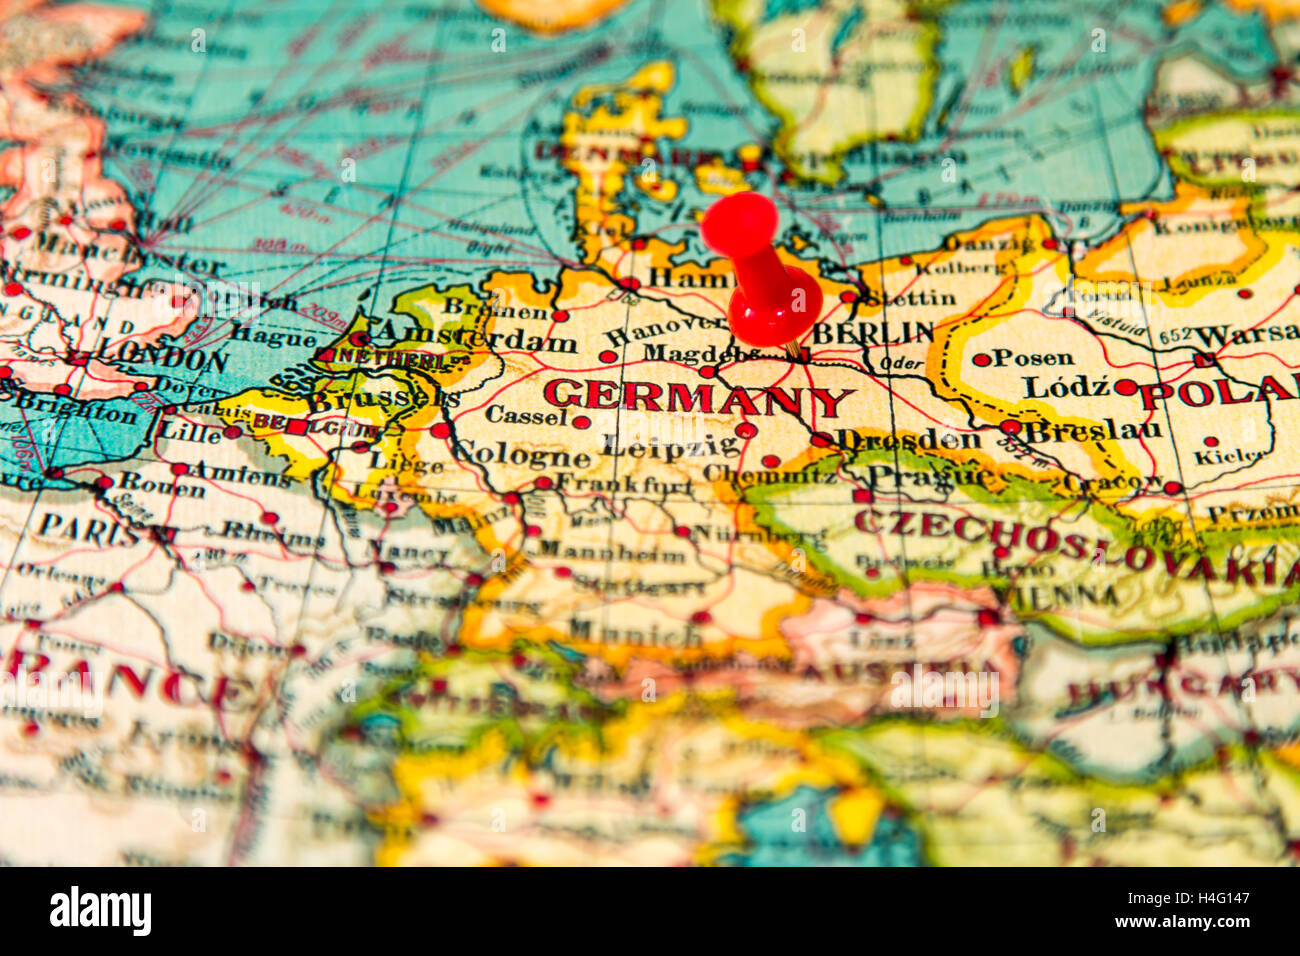 Berlin Germany Pinned On Vintage Map Of Europe Stock Photo